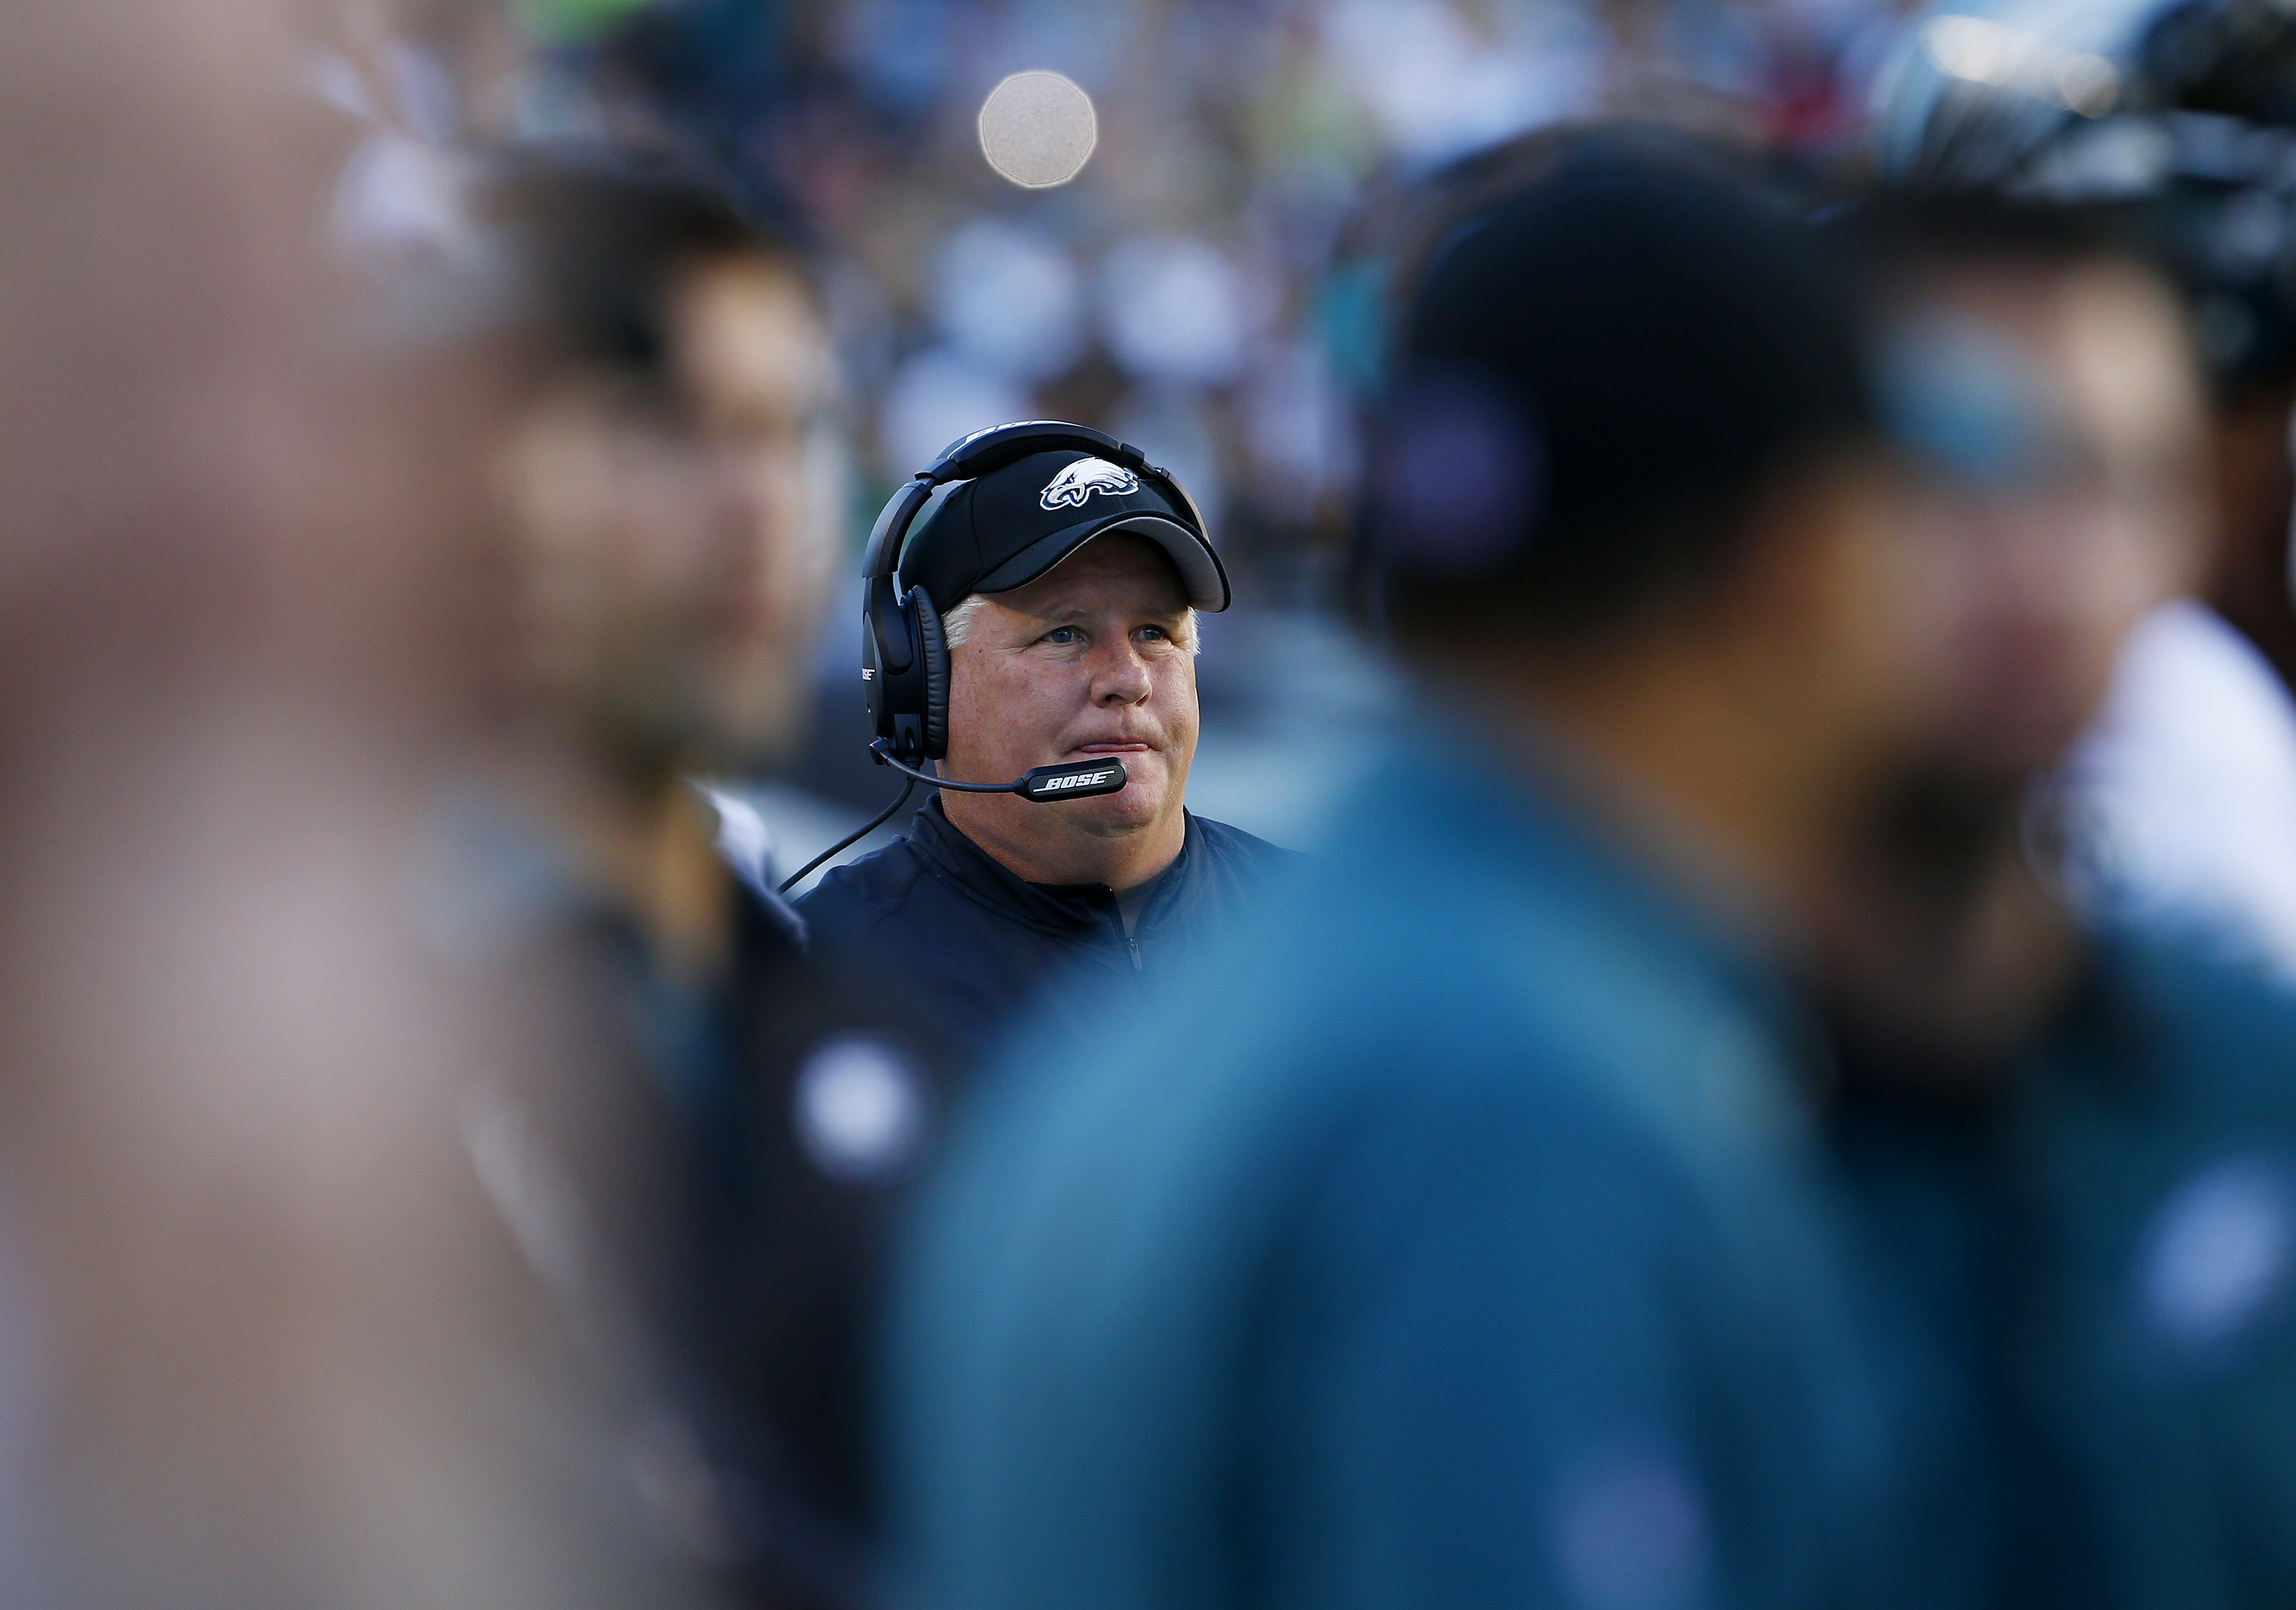 PHILADELPHIA, PA - SEPTEMBER 20: Head coach Chip Kelly of the Philadelphia Eagles calls a play during the first quarter against the Dallas Cowboys during a football game at Lincoln Financial Field on September 20, 2015 in Philadelphia, Pennsylvania. The Cowboys defeated the Eagles 20-10. (Photo by Rich Schultz /Getty Images)